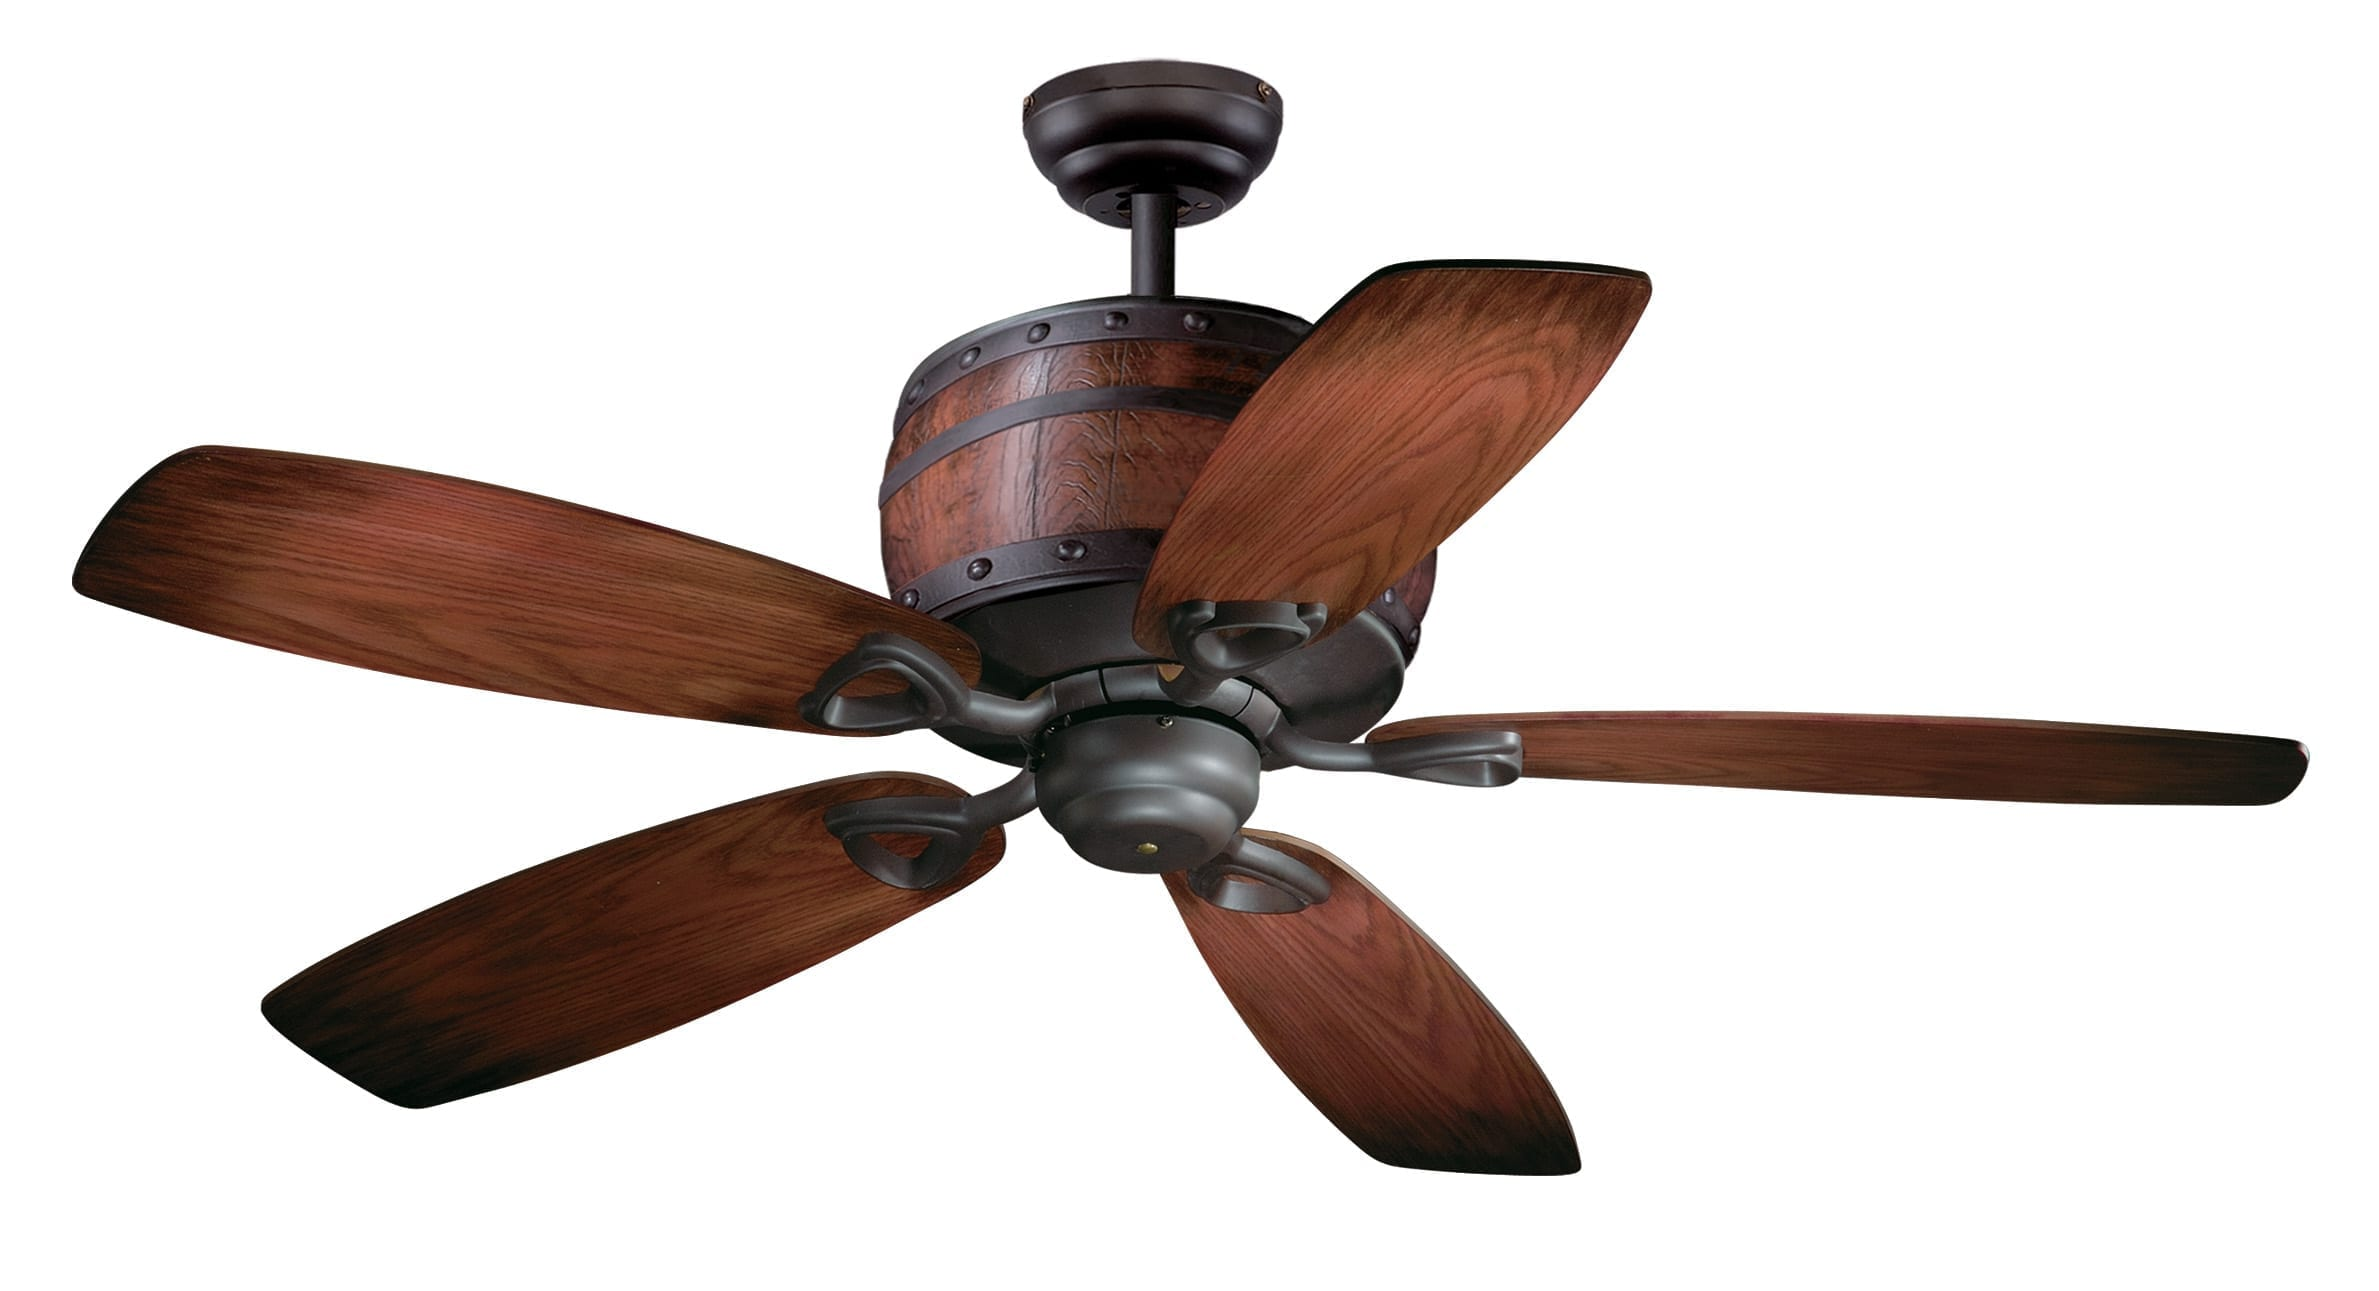 Rustic Style Ceiling Fans Cabernet 52 Quot Ceiling Fan Oil Burnished Bronze Vaxcel